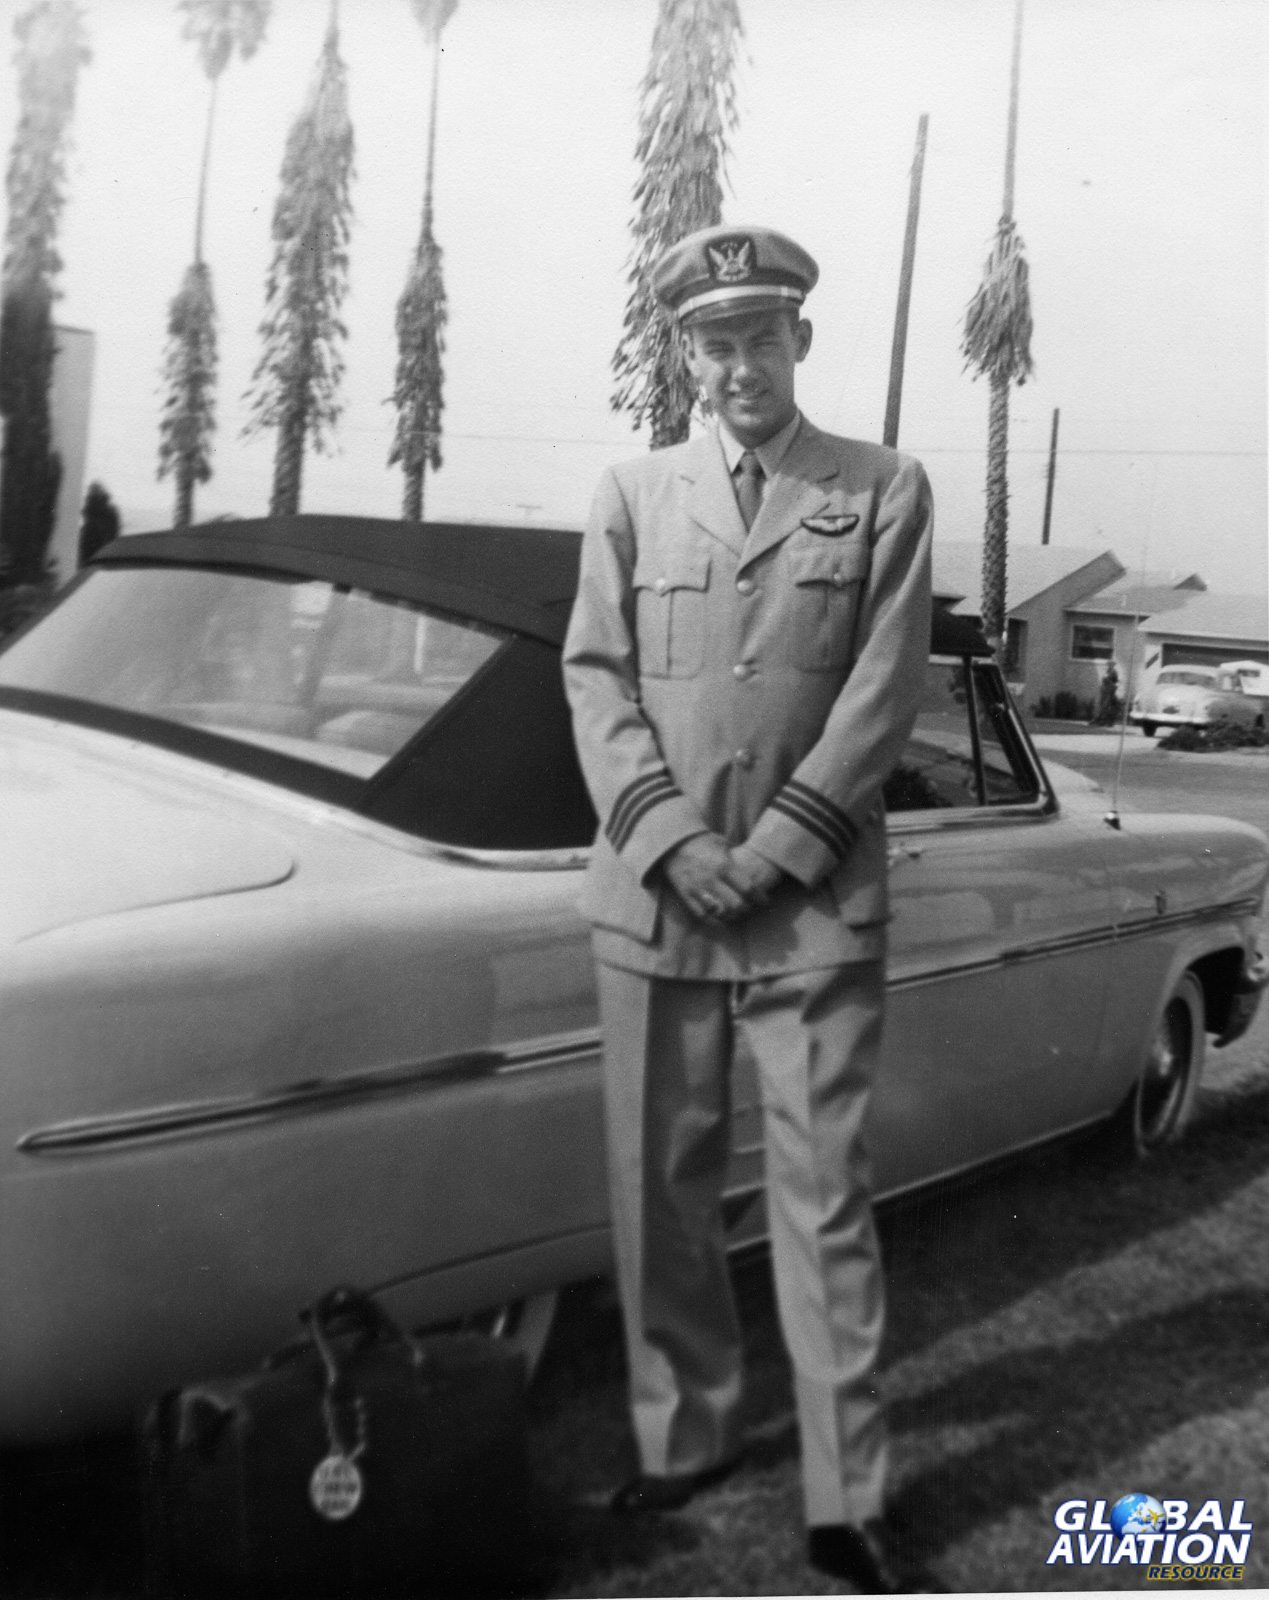 Clay in 1953- Clay Lacy Collection